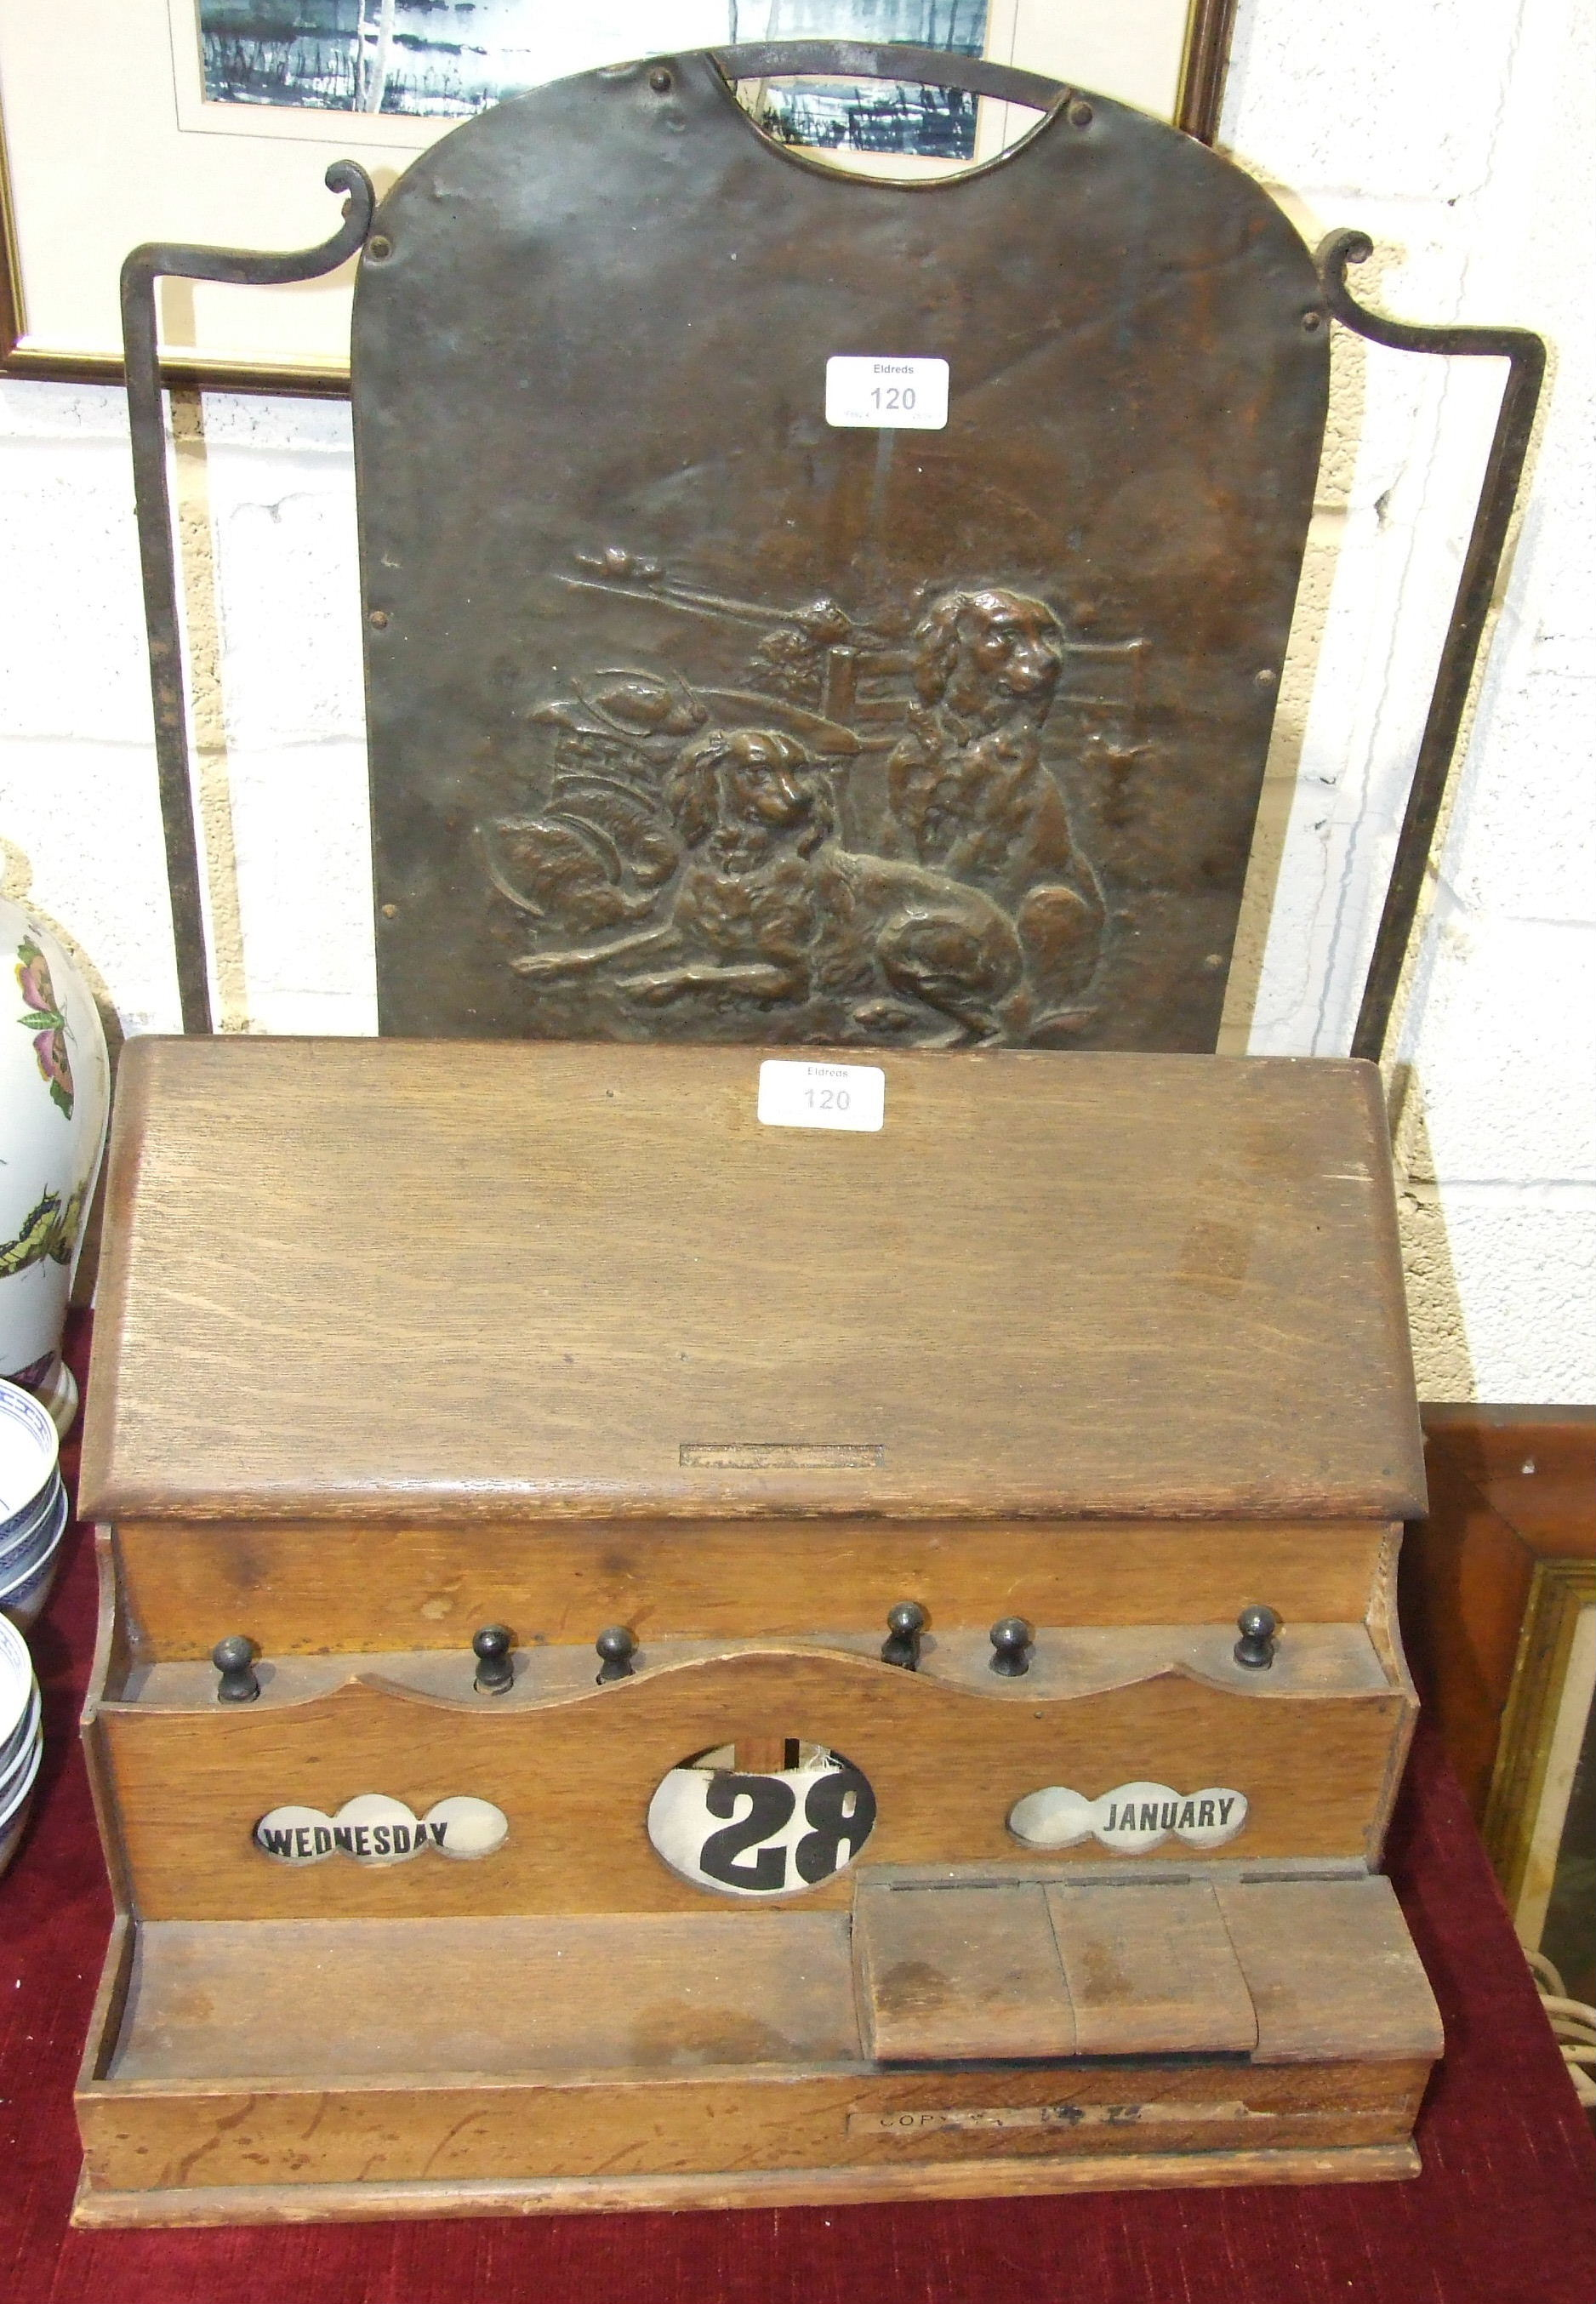 Lot 120 - A late-19th/early-20th century oak stationery/writing box, the hinged lid opening to reveal a letter